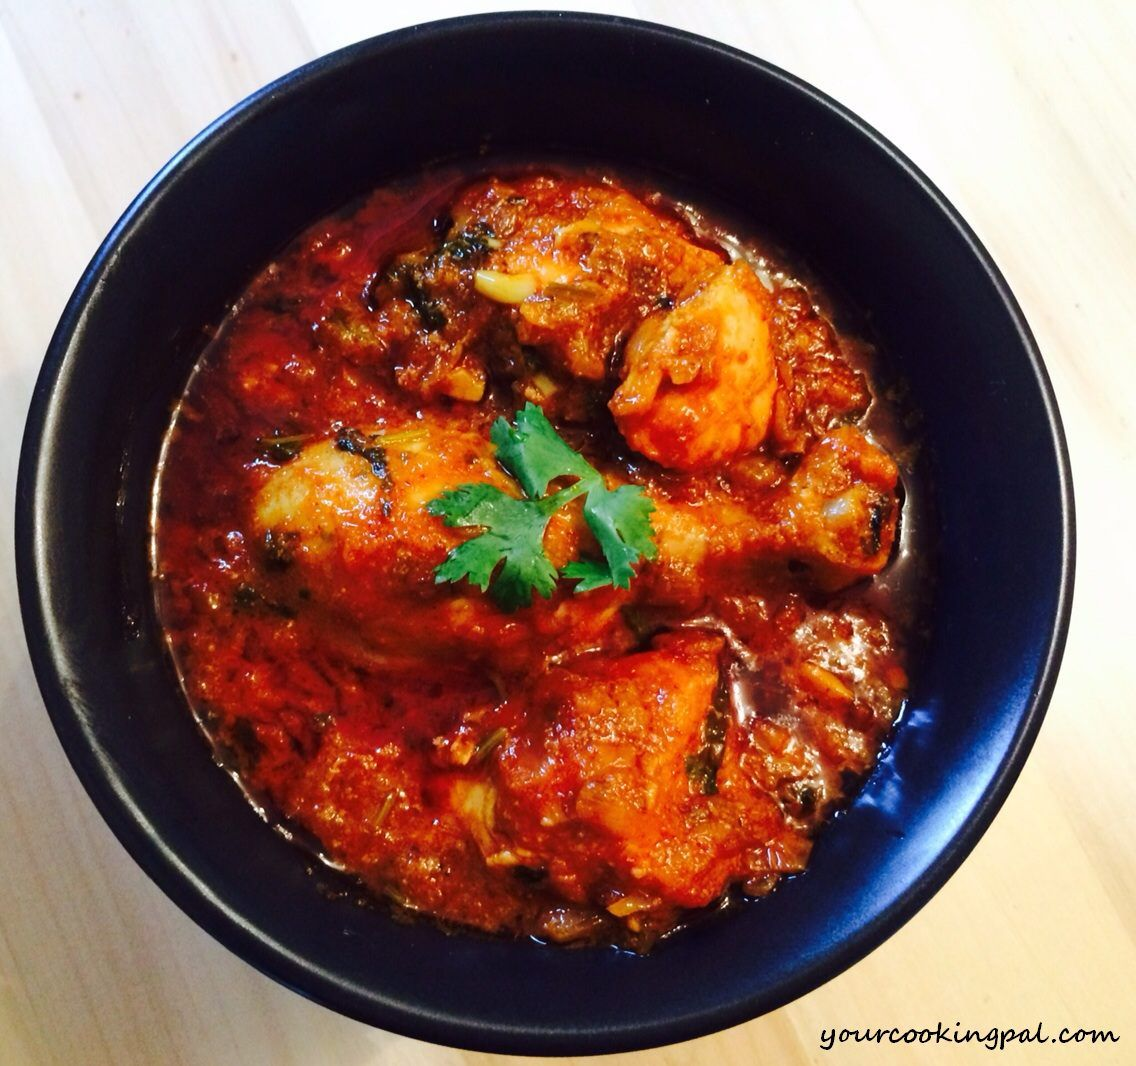 Coriander Chicken Curry Your Cooking Pal Chicken Recipes Cooking Chicken Dishes